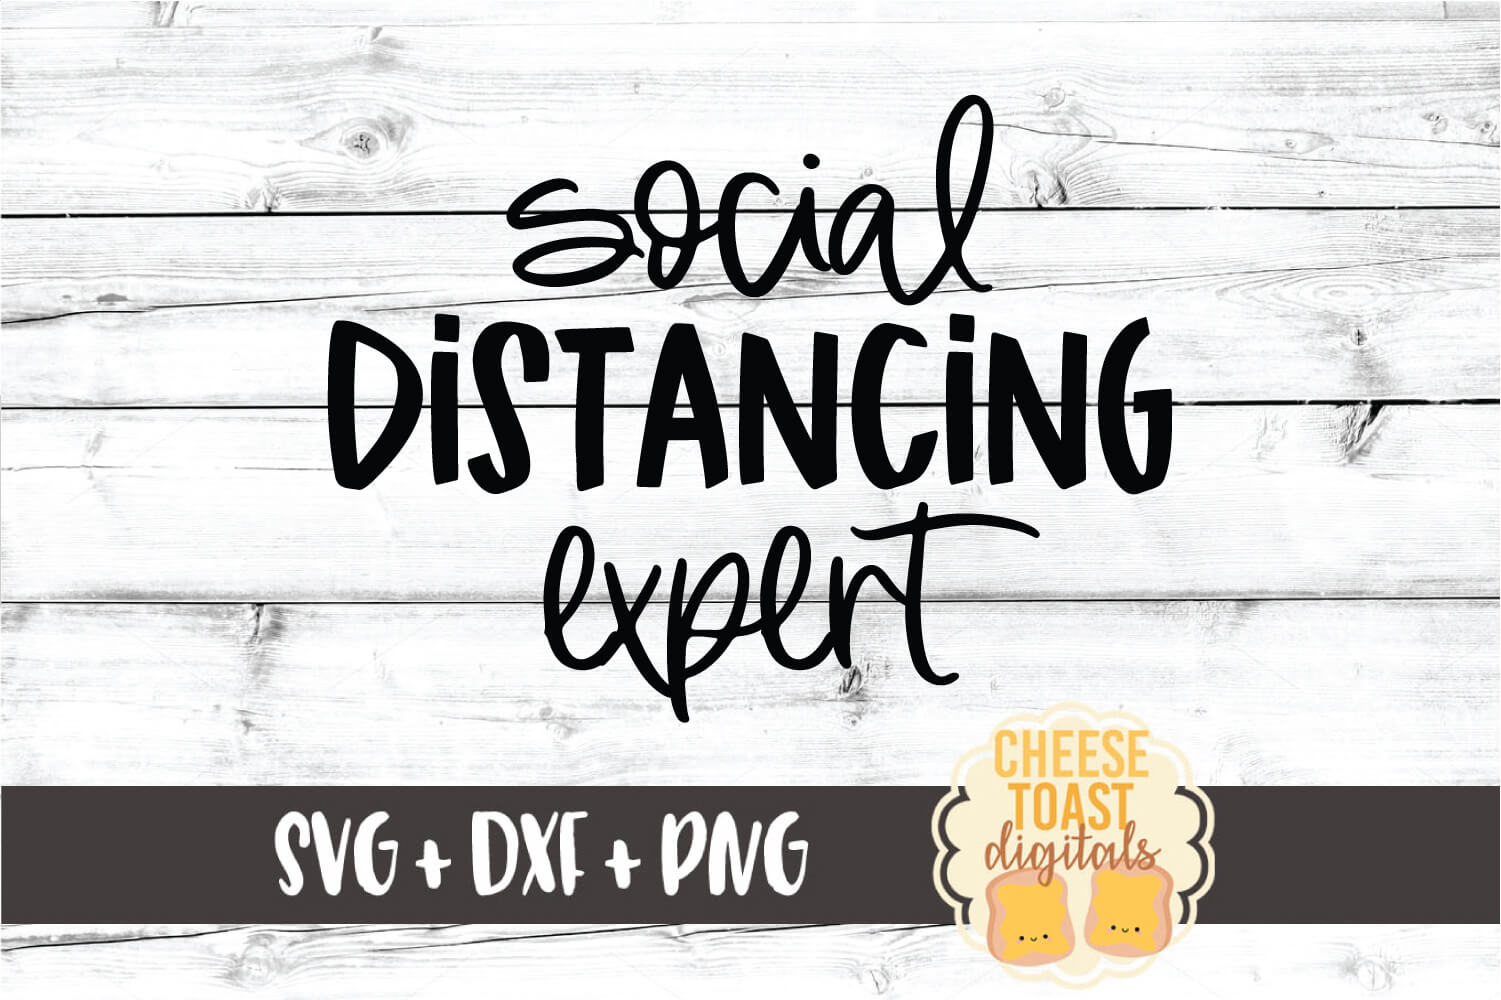 Social Distancing Expert SVG PNG DXF Cut Files example image 2